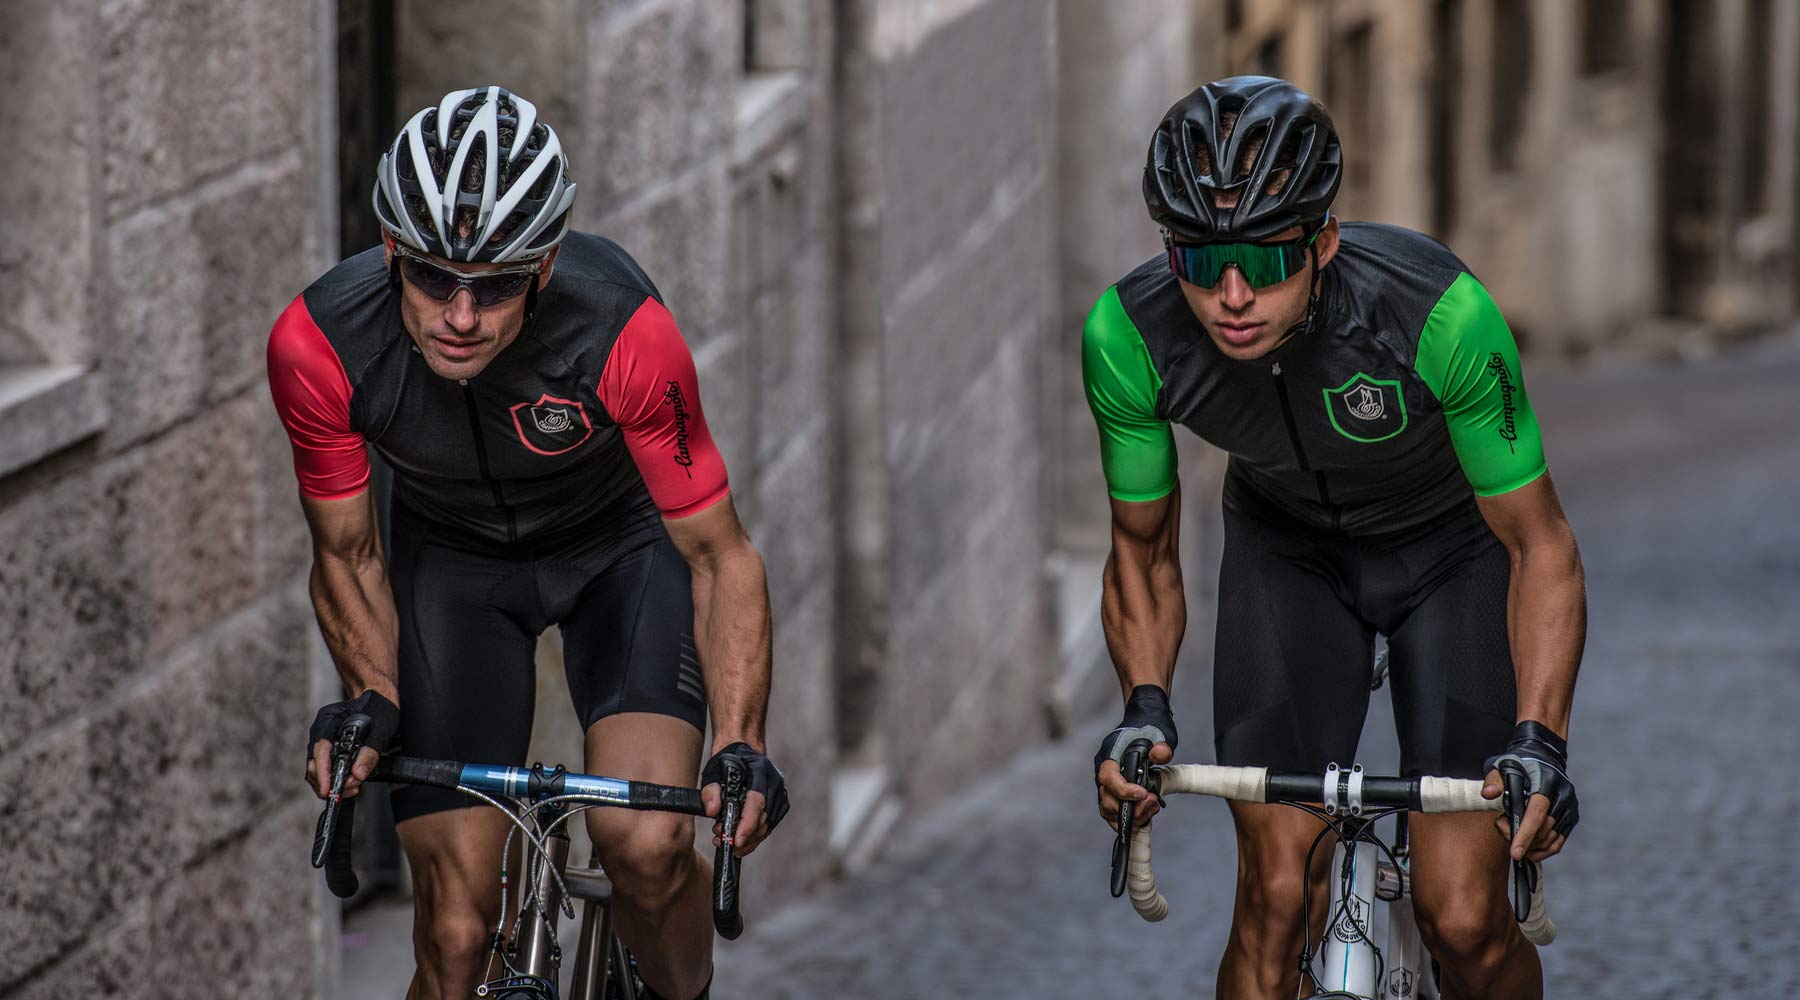 18a6cec2ddf Campagnolo s Movement is into road cycling clothing - Bikerumor